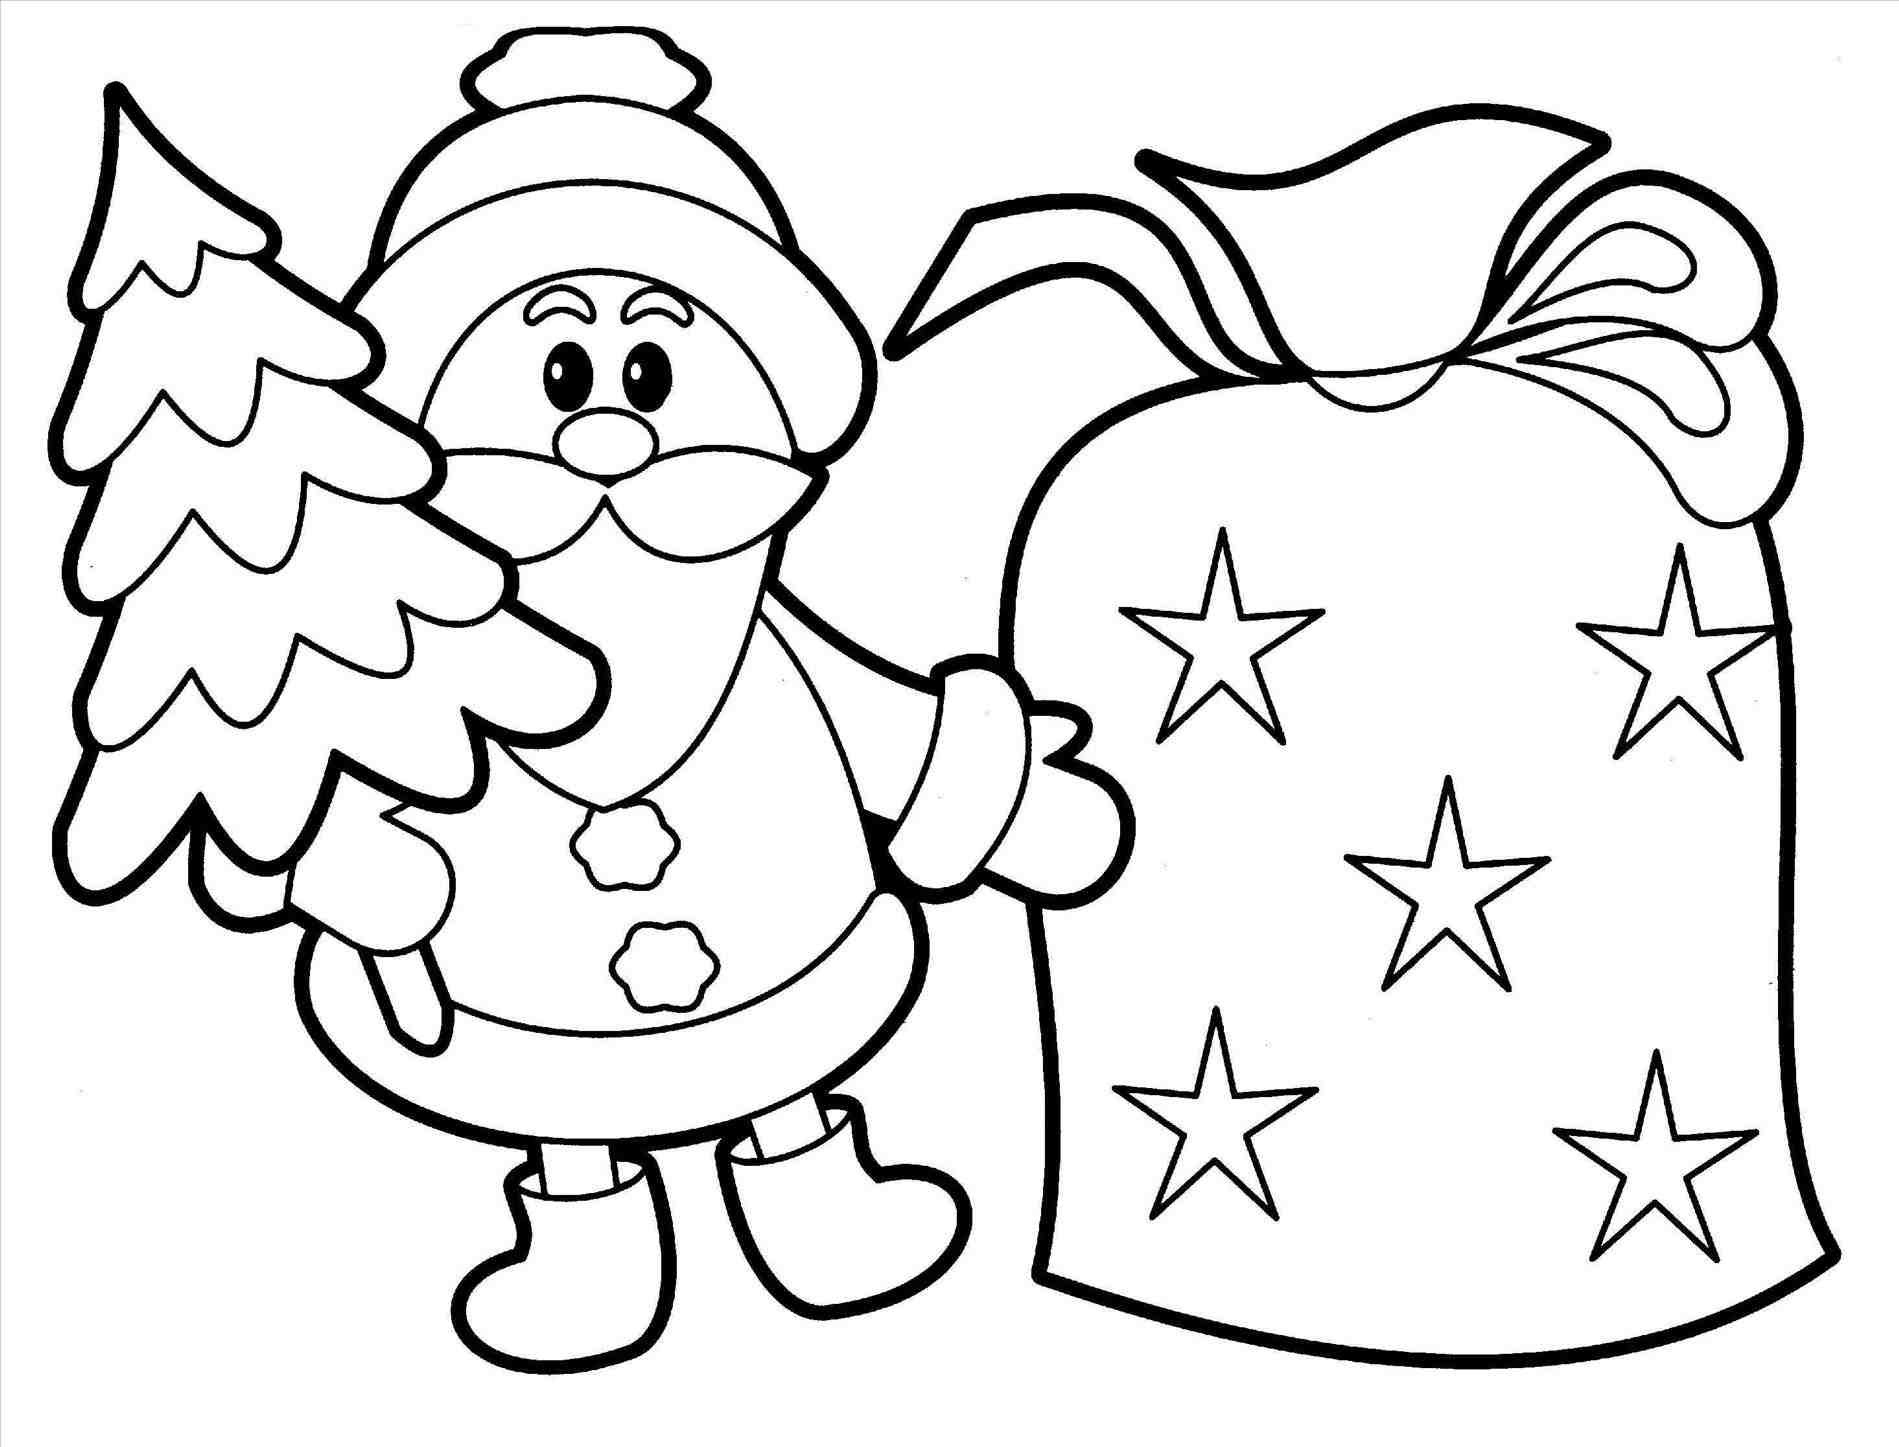 easy christmas drawing at getdrawings com free for personal use